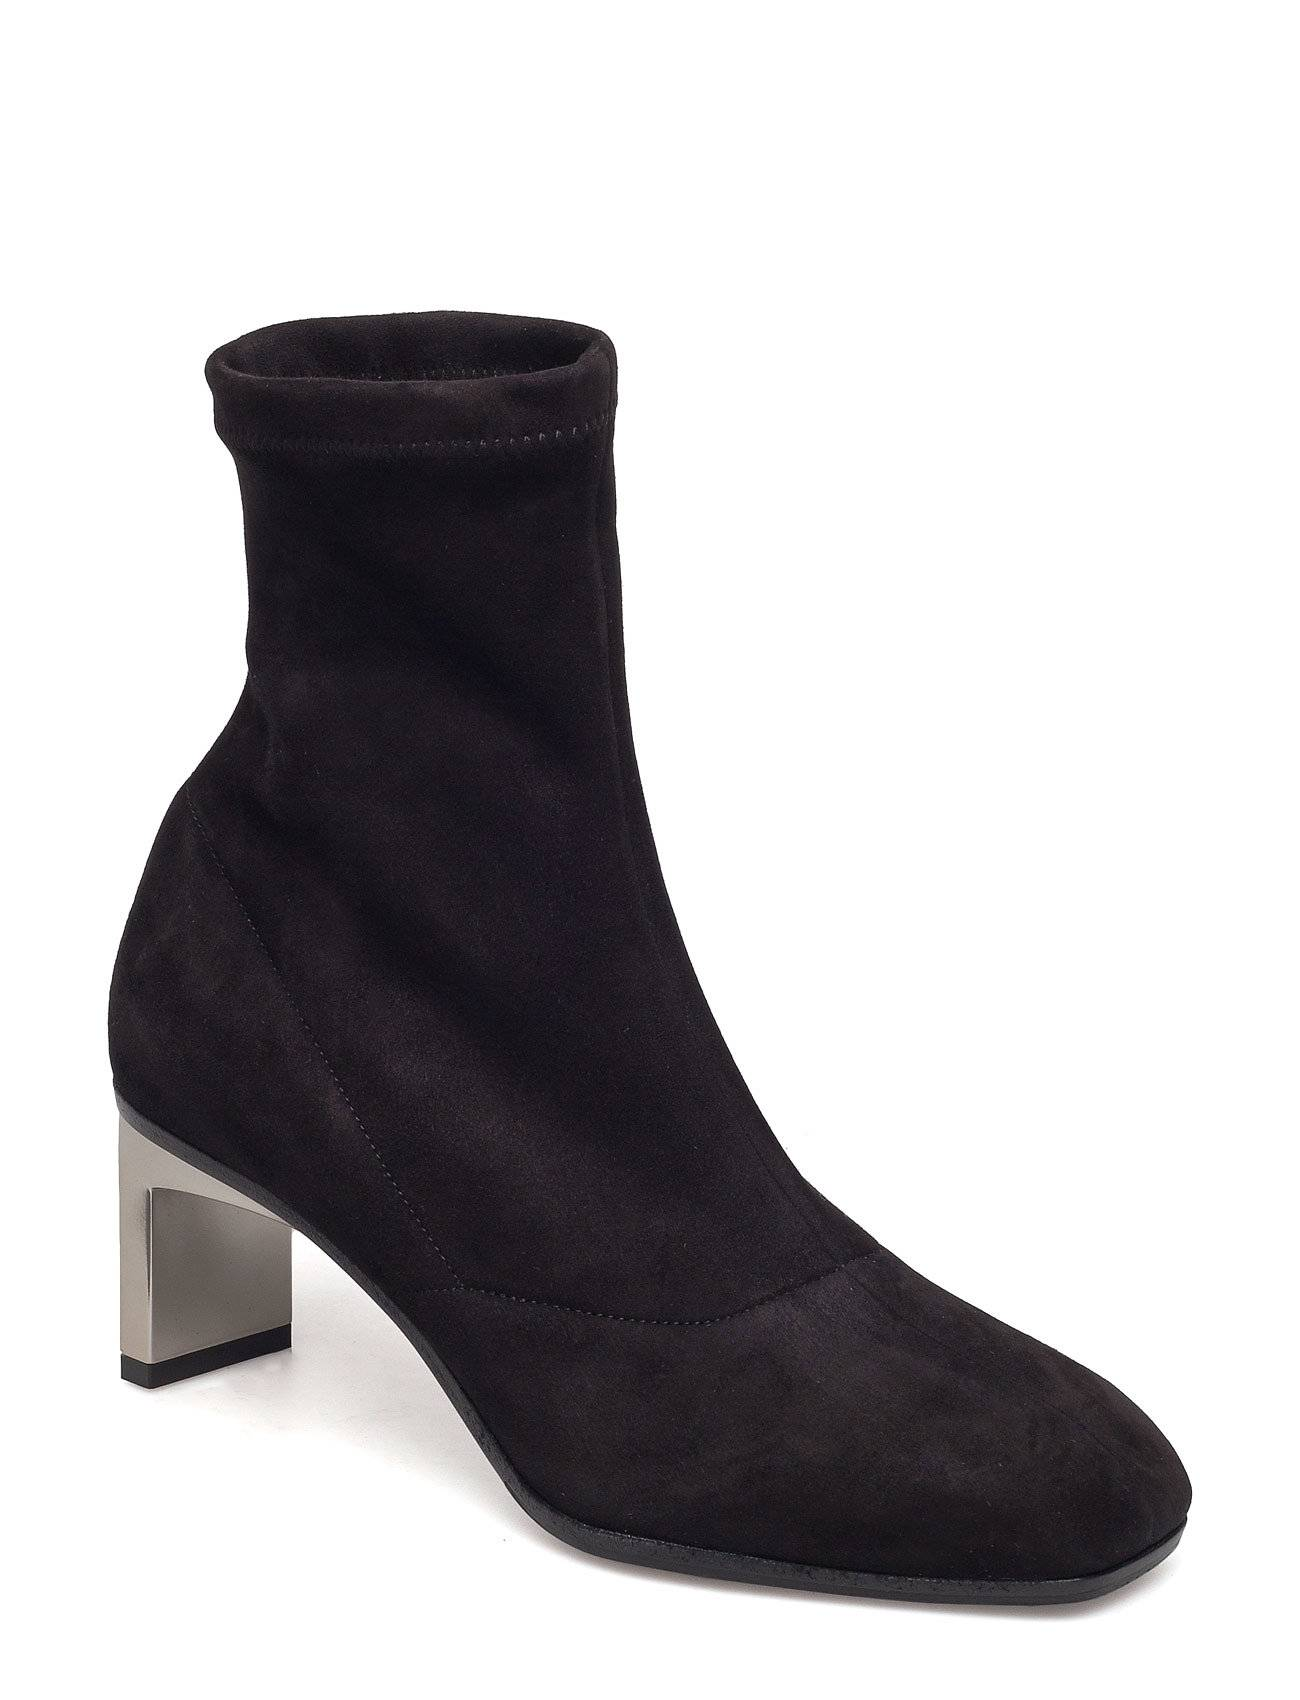 3.1 Phillip Lim Blade - 60mm Ankle Boot